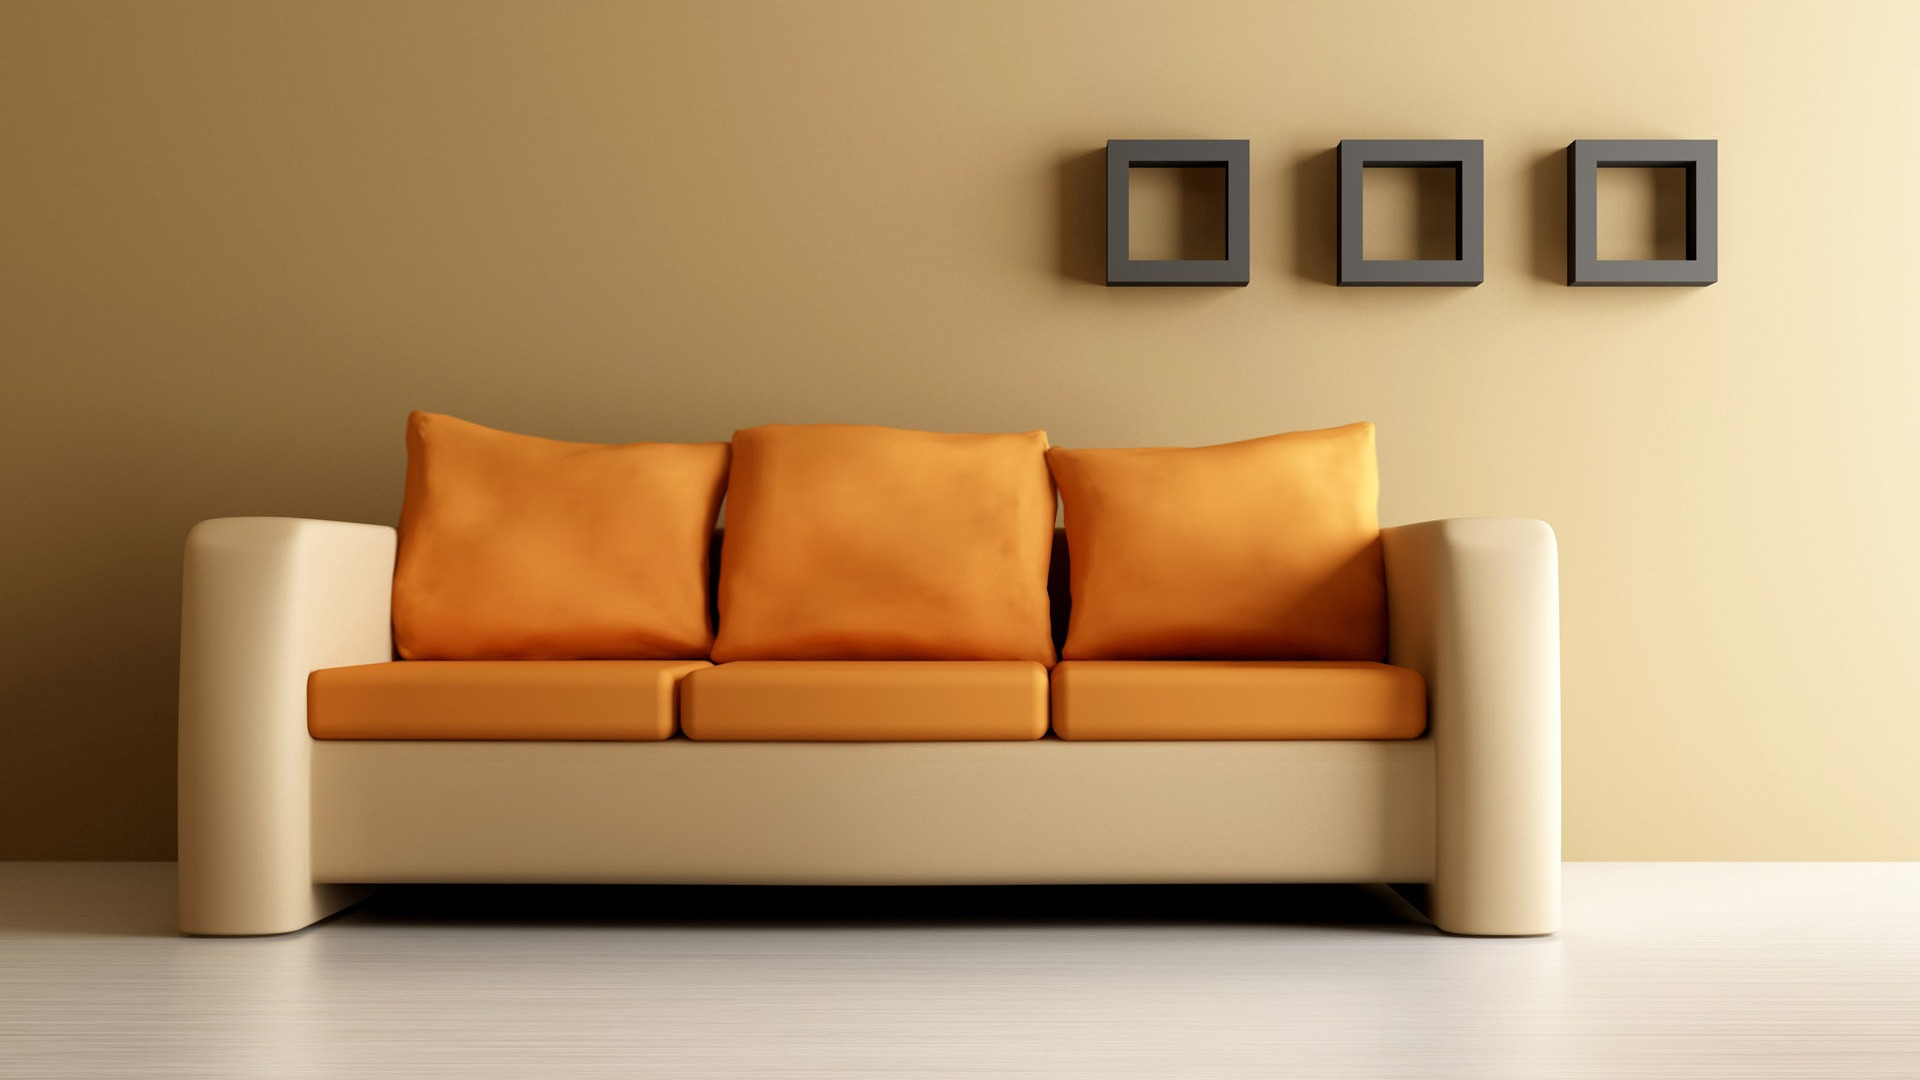 Orange Couch Wallpaper Interior Design Other Wallpapers in jpg ...